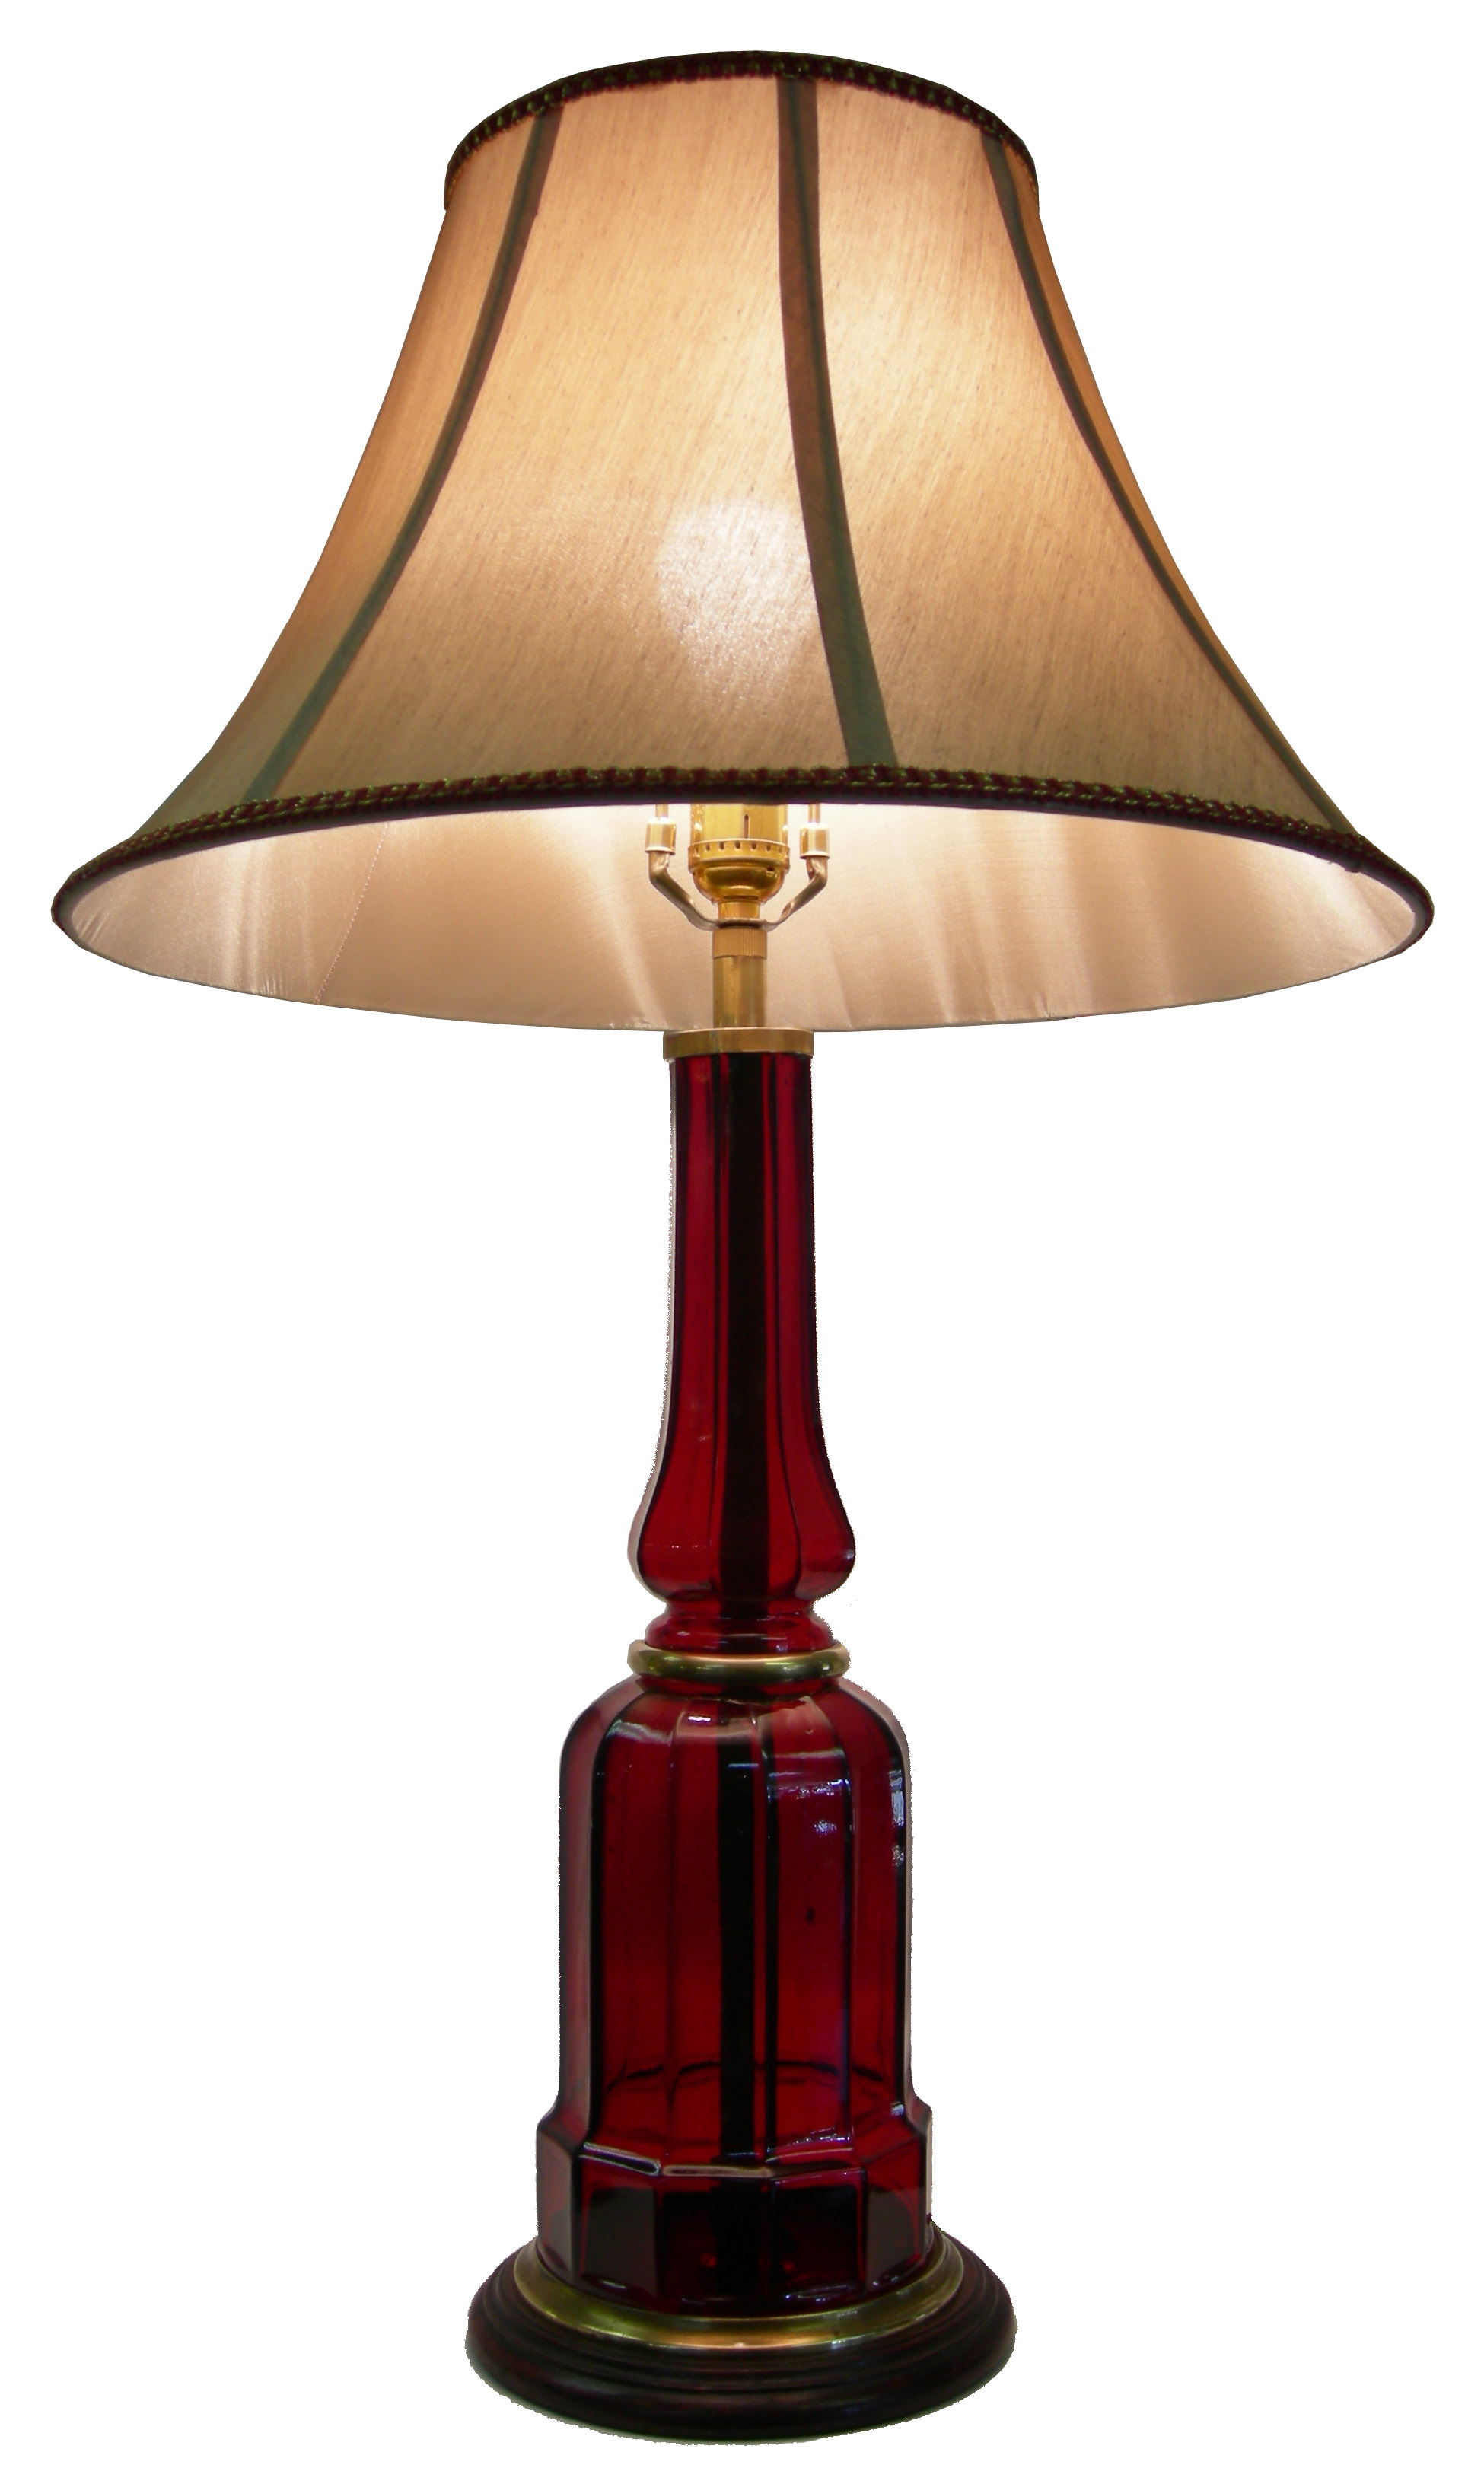 TOP 10 Old lamps of new era